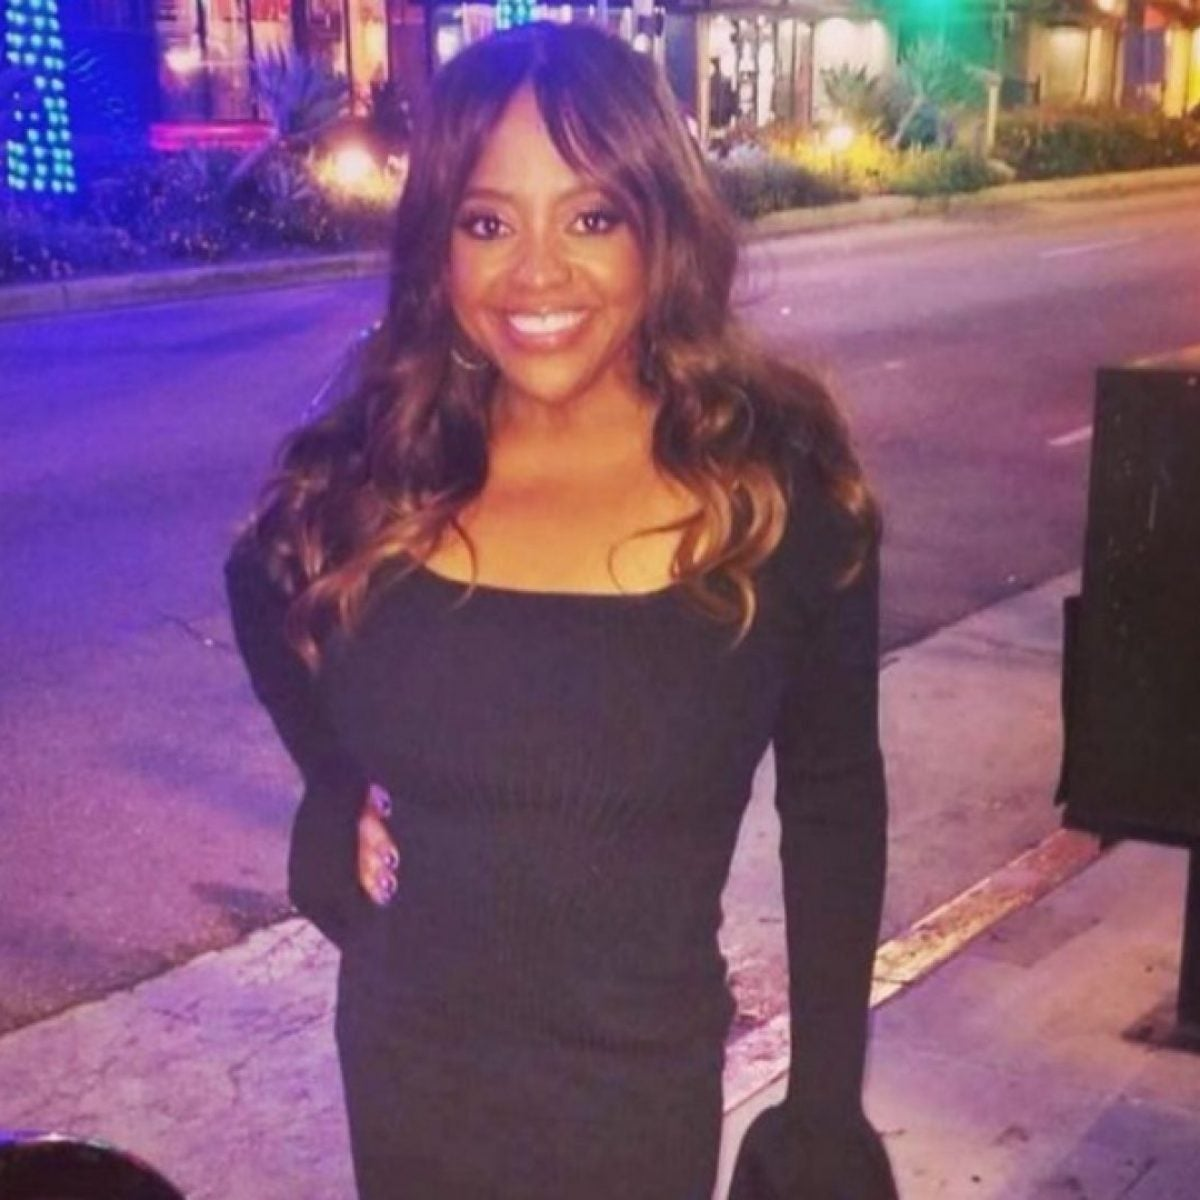 Sherri Shepherd Dazzles While Showing Off Keto Diet Results In Curve-Hugging Dress